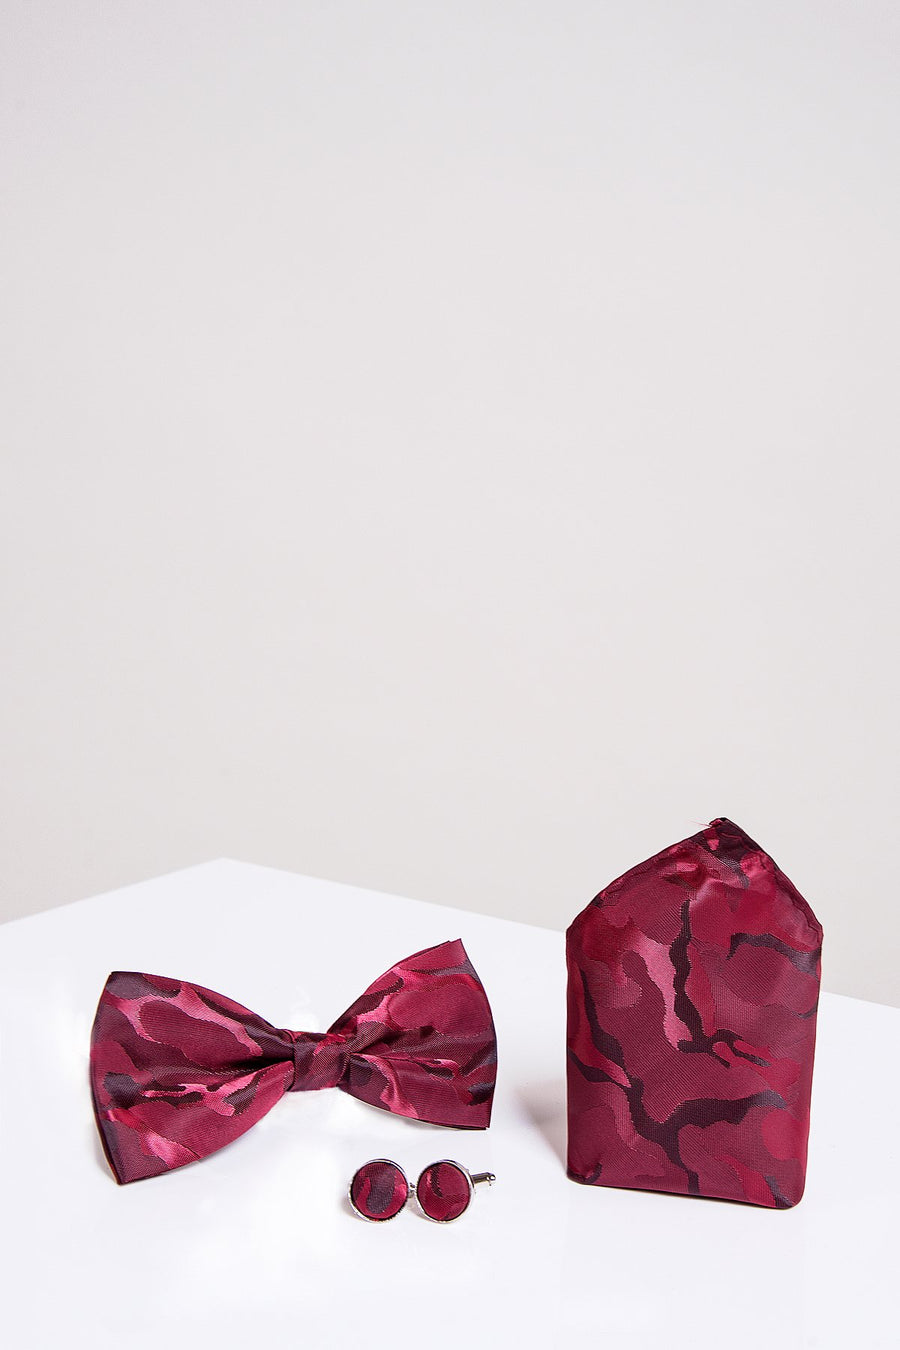 BT ARMY Wine Camouflage Bow Tie, Cufflink and Pocket Square Set - Wedding Suit Direct